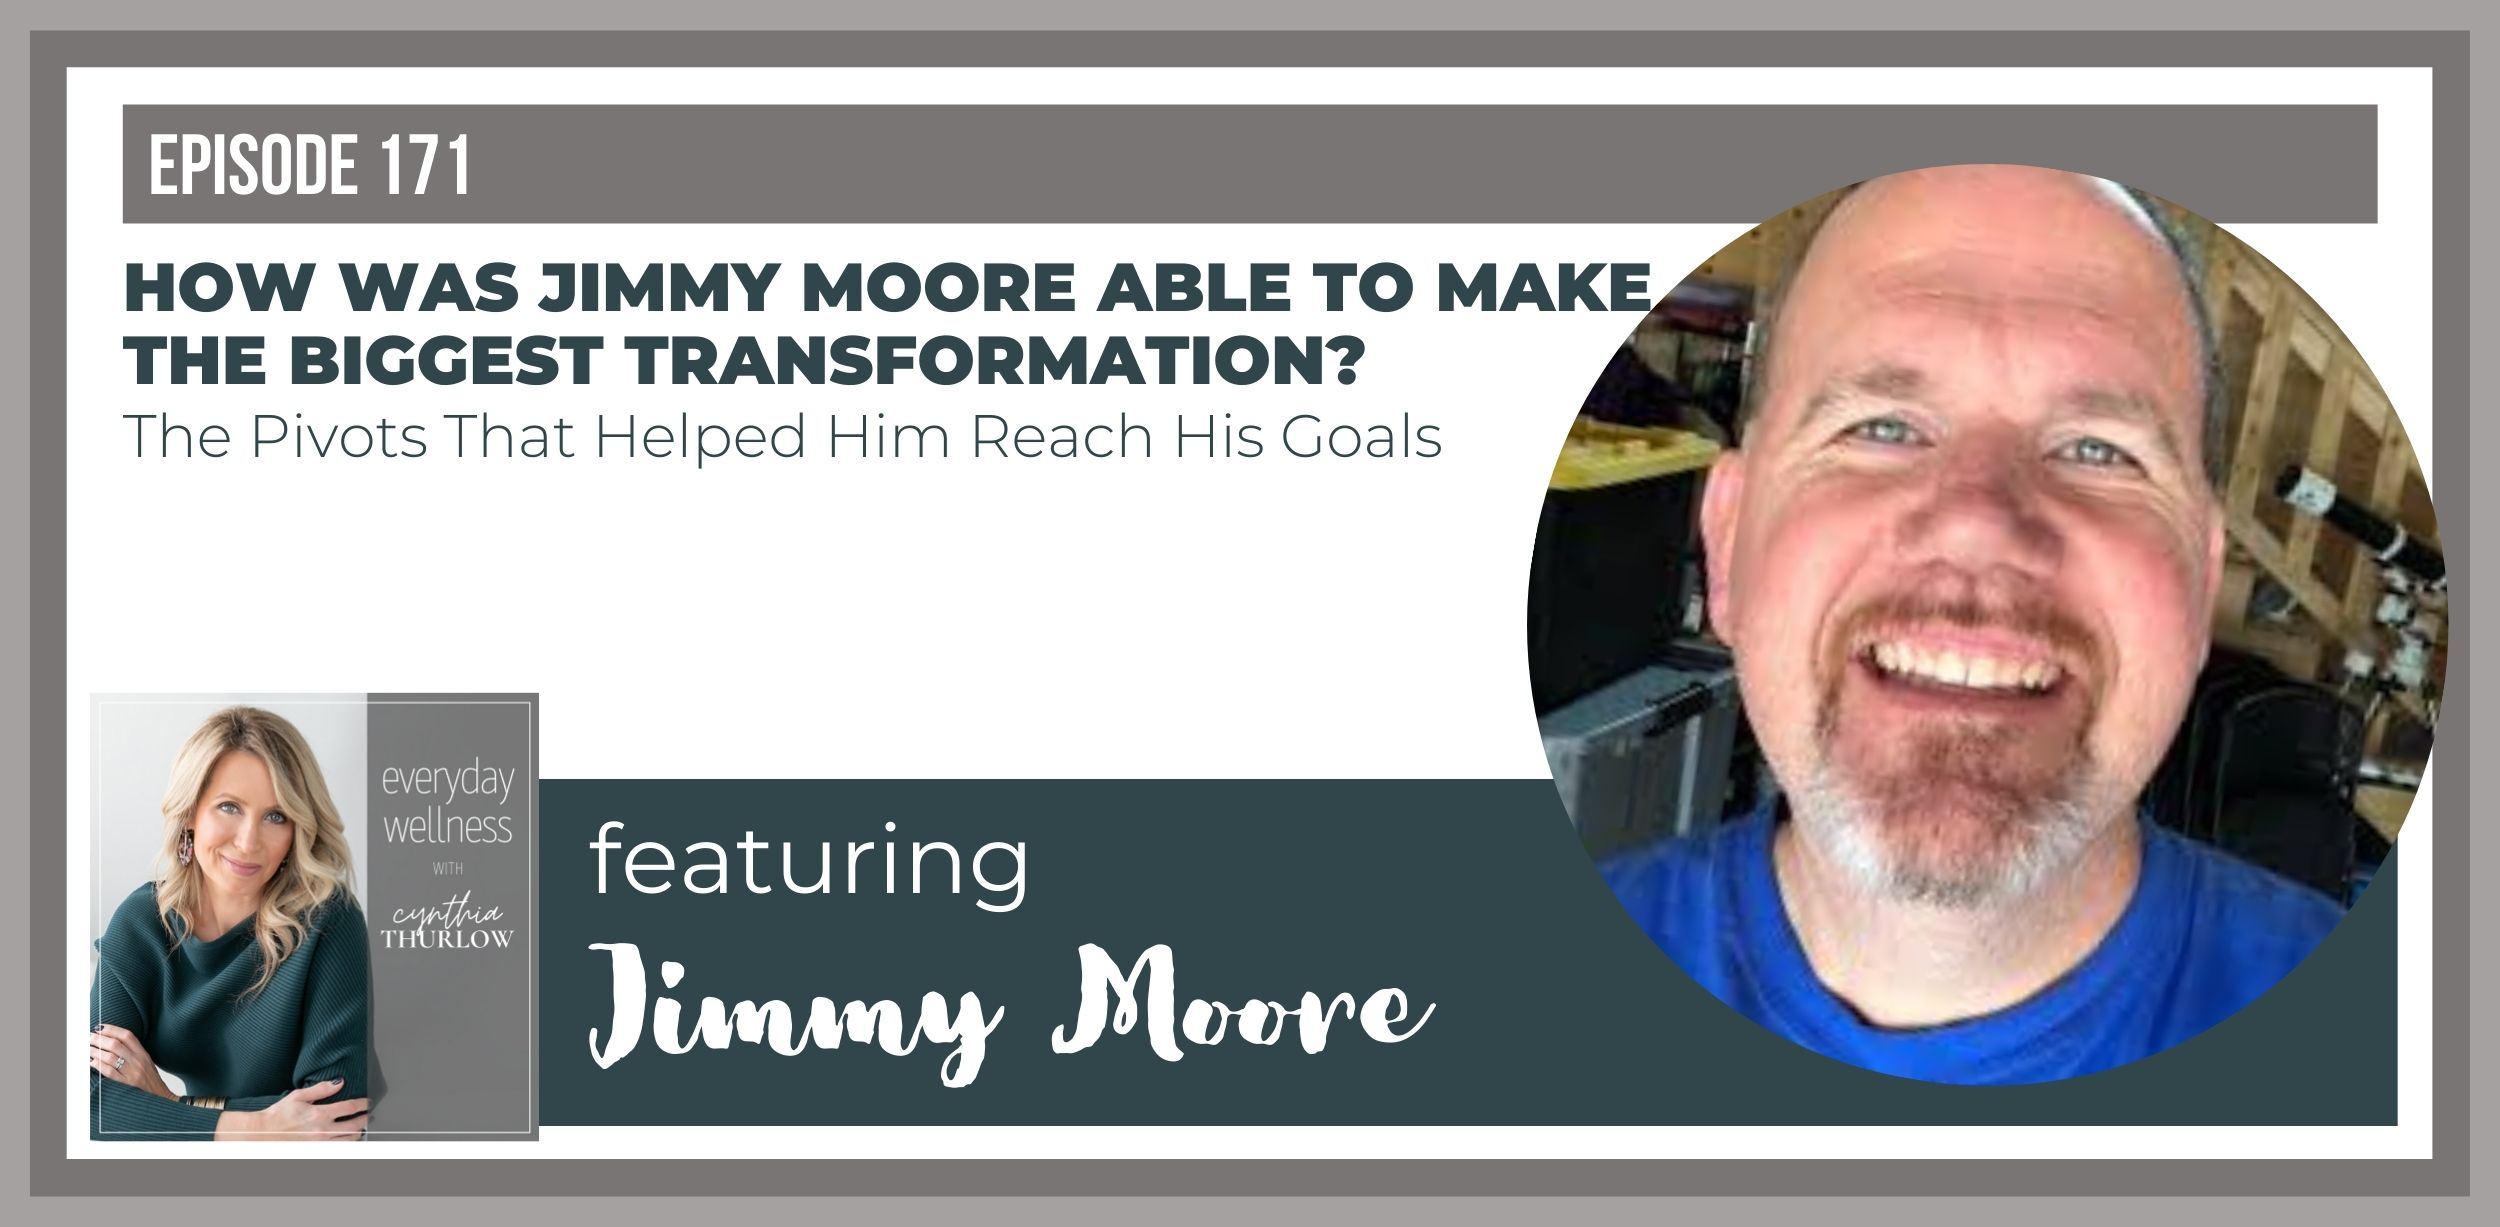 Jimmy Moore on Everyday Wellness Podcast with Cynthia Thurlow